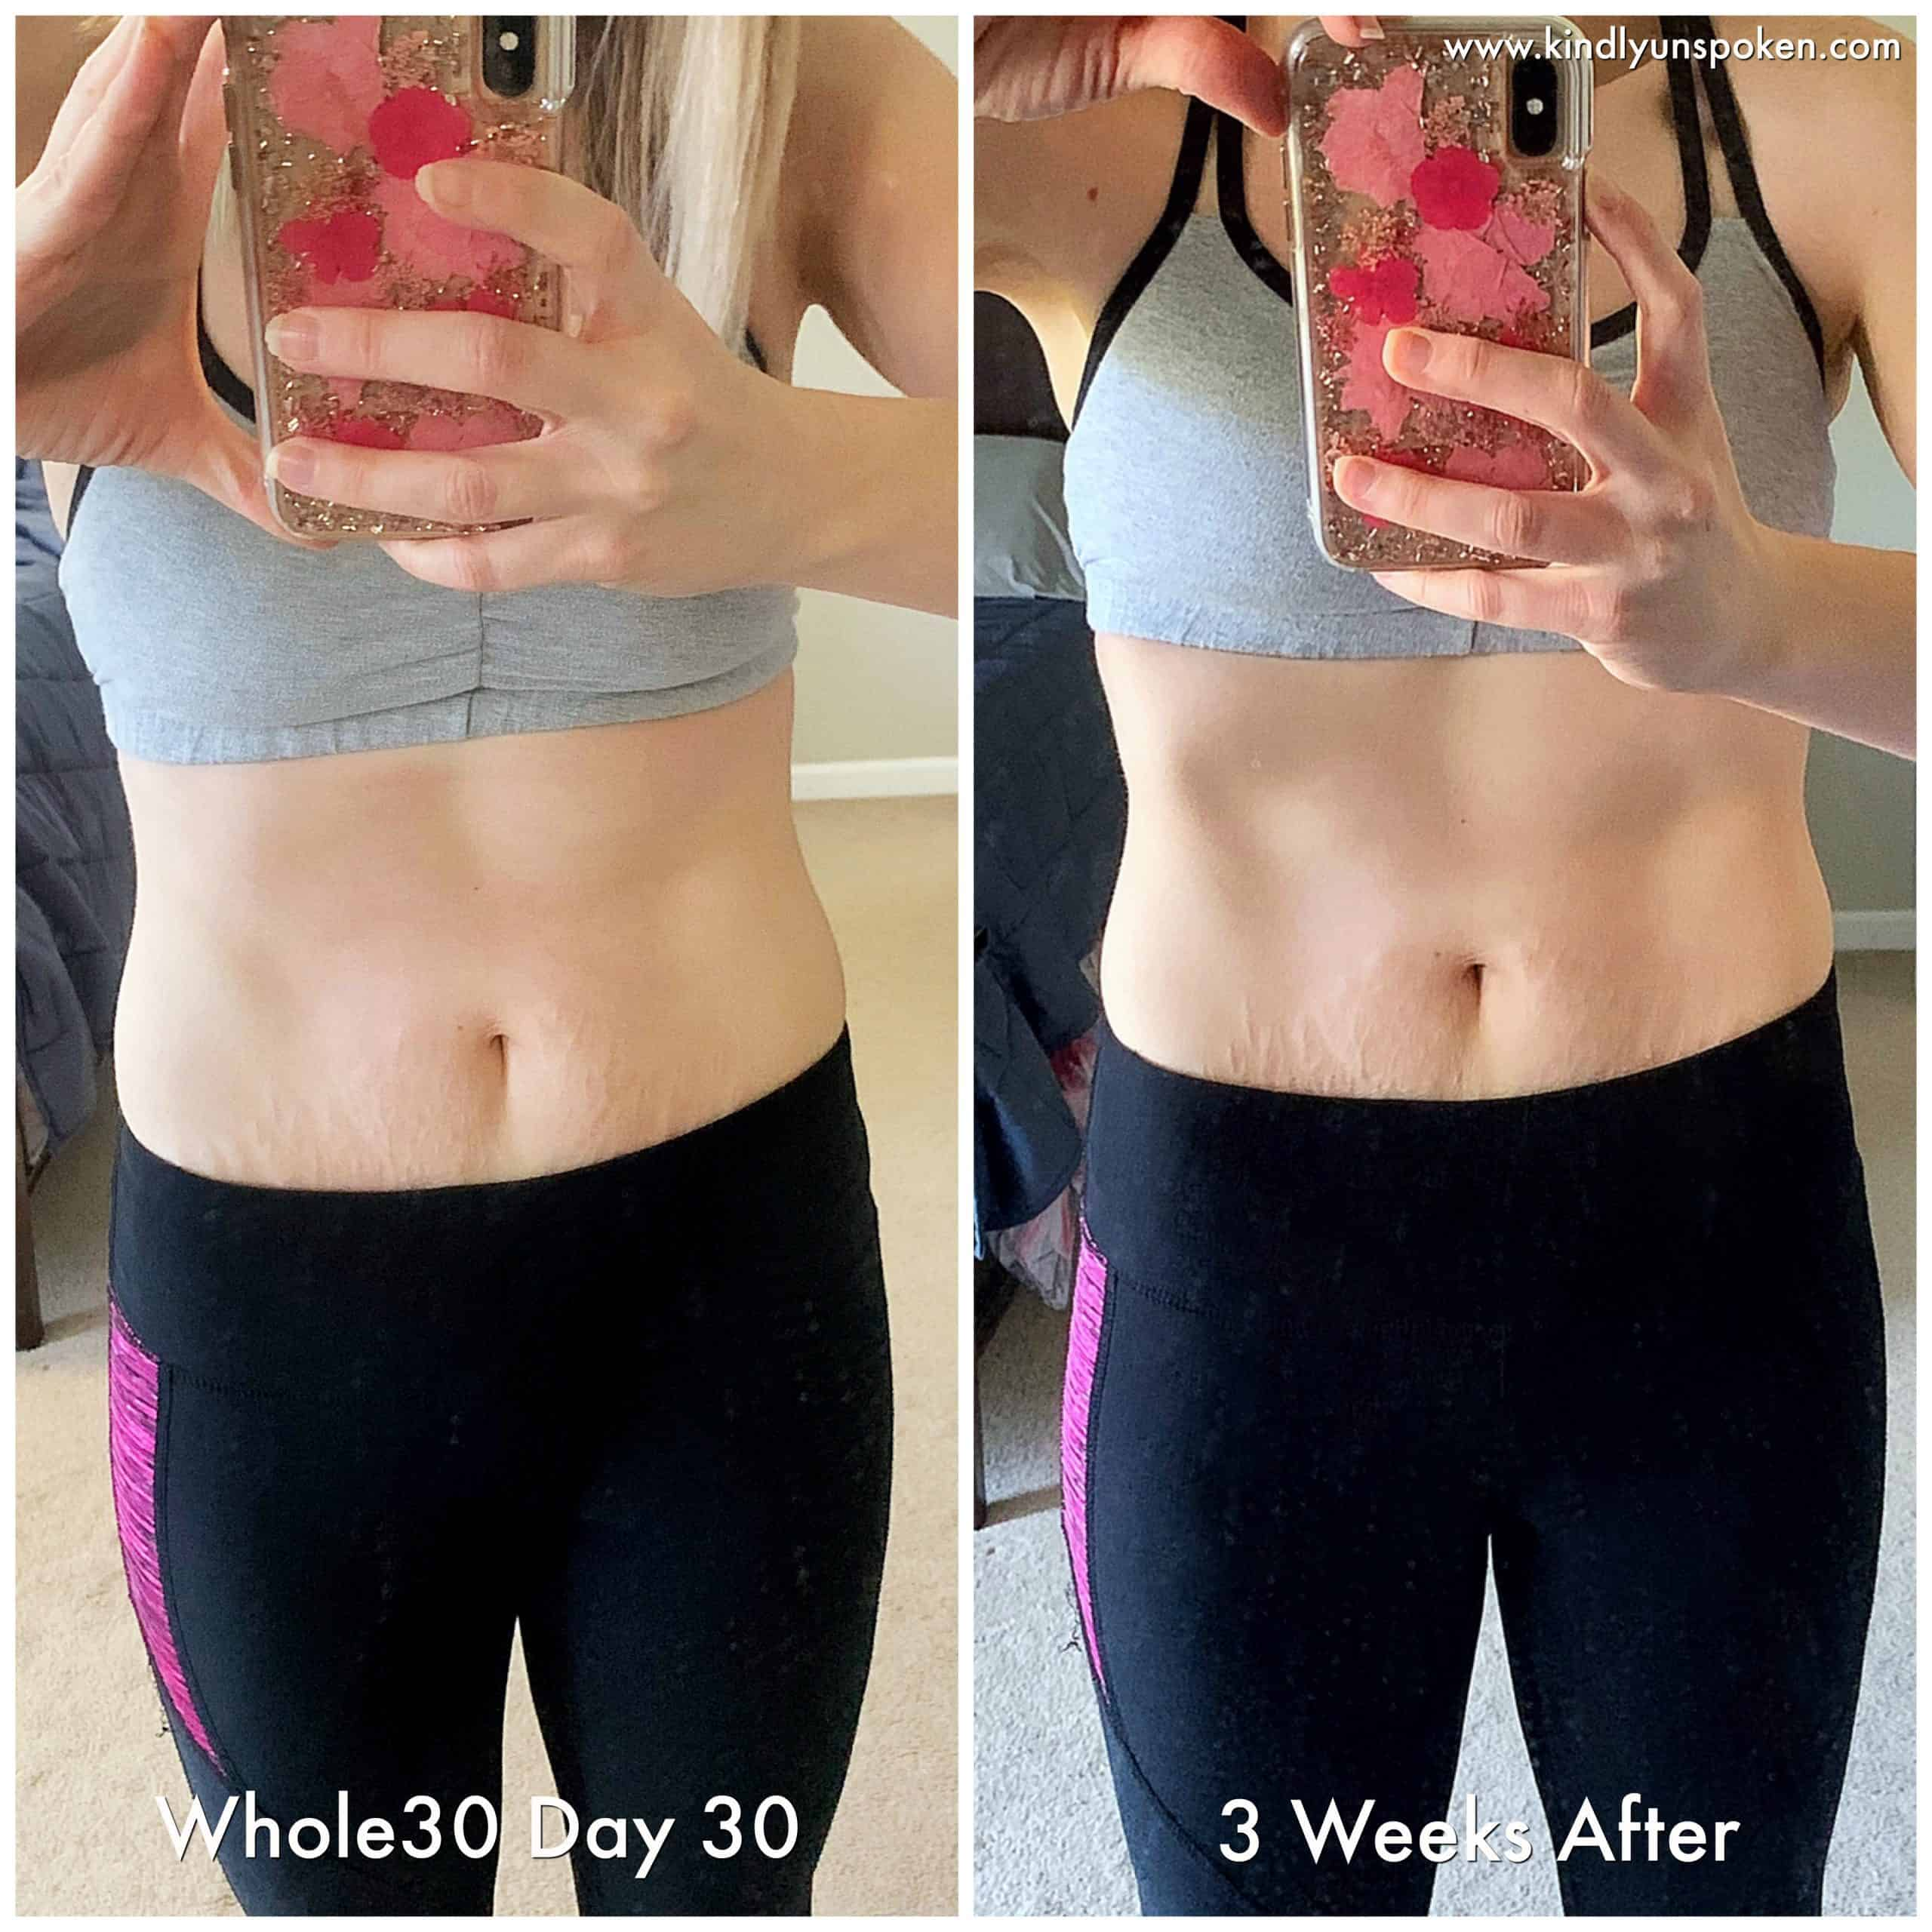 Check out my Whole30 results, success story, and before and after photos of my Whole30 transformation! #whole30 #health #cleaneating #weightloss